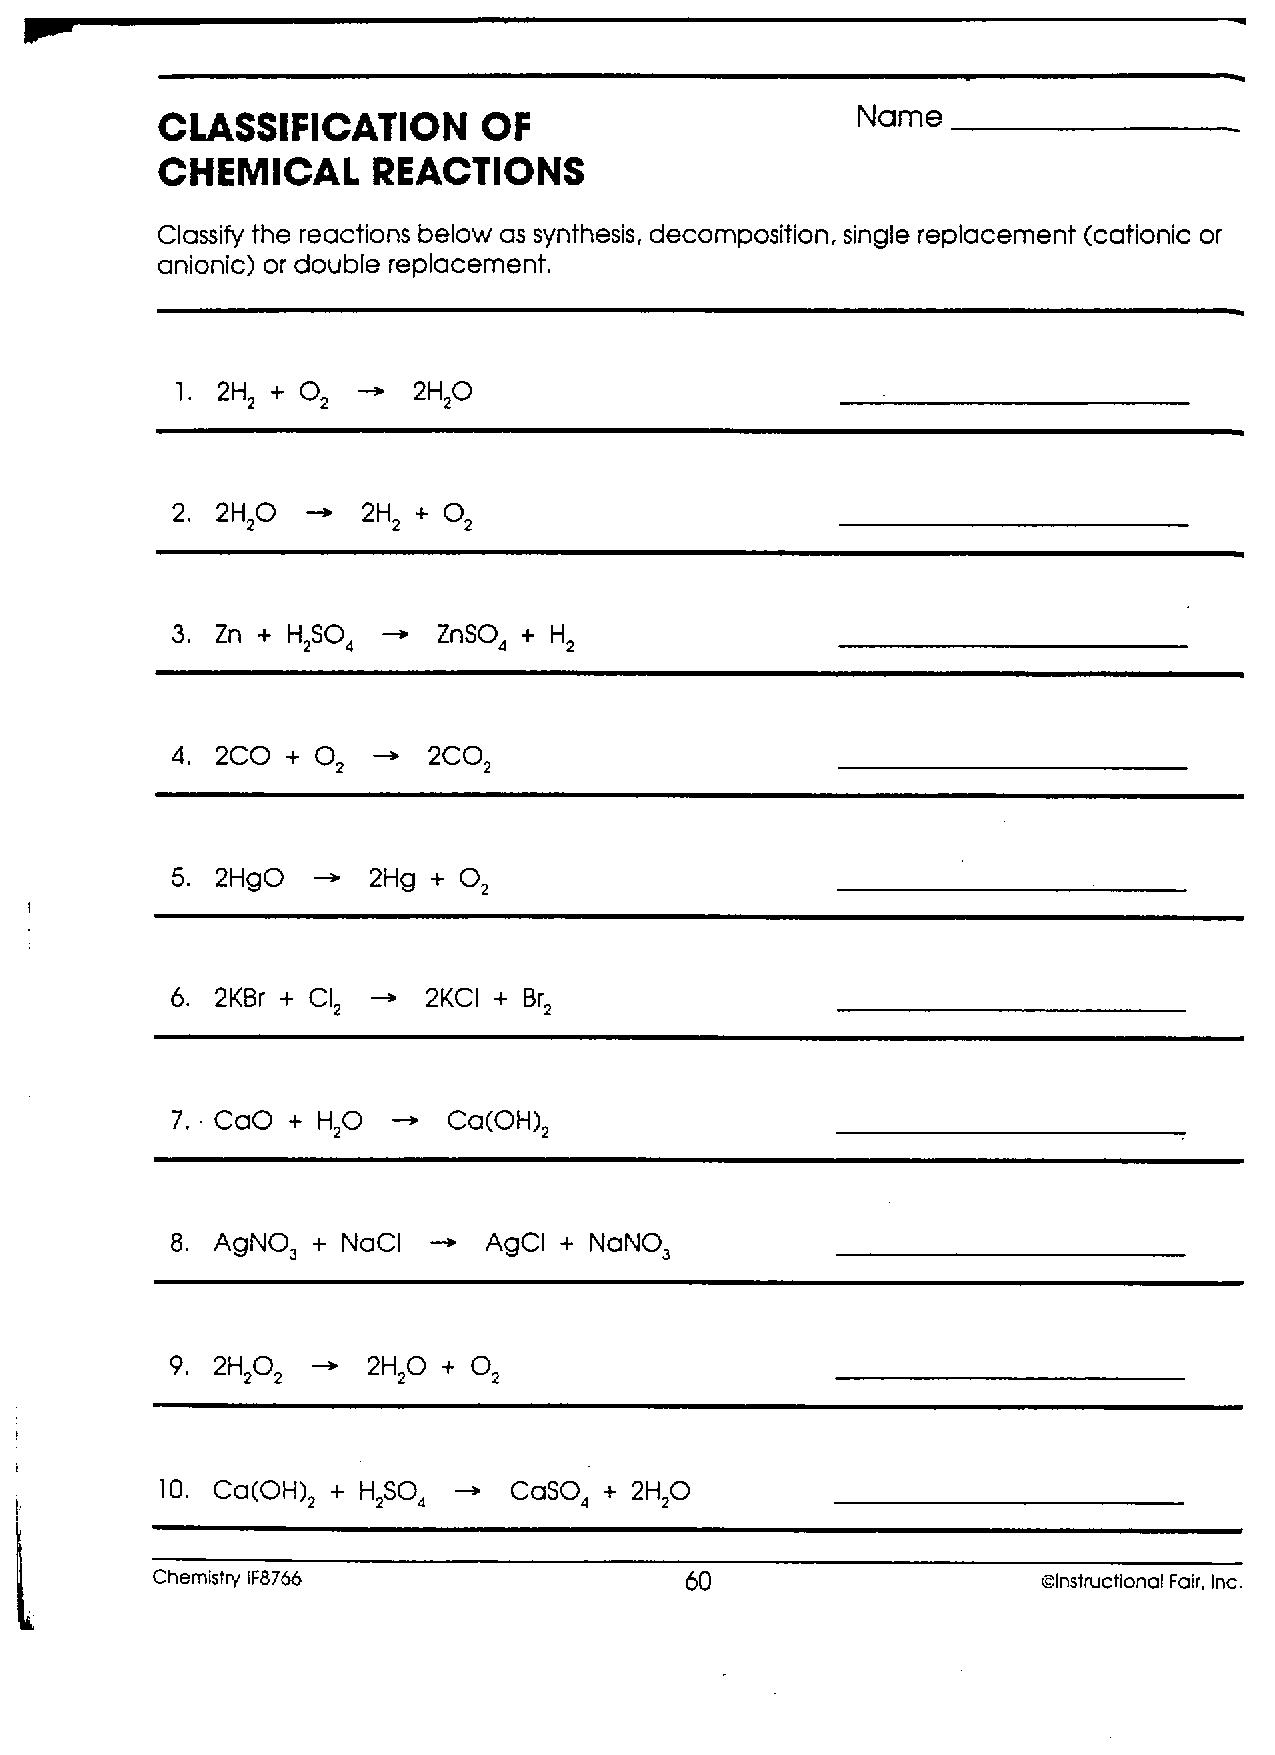 overview chemical reactions worksheet - bagru.info